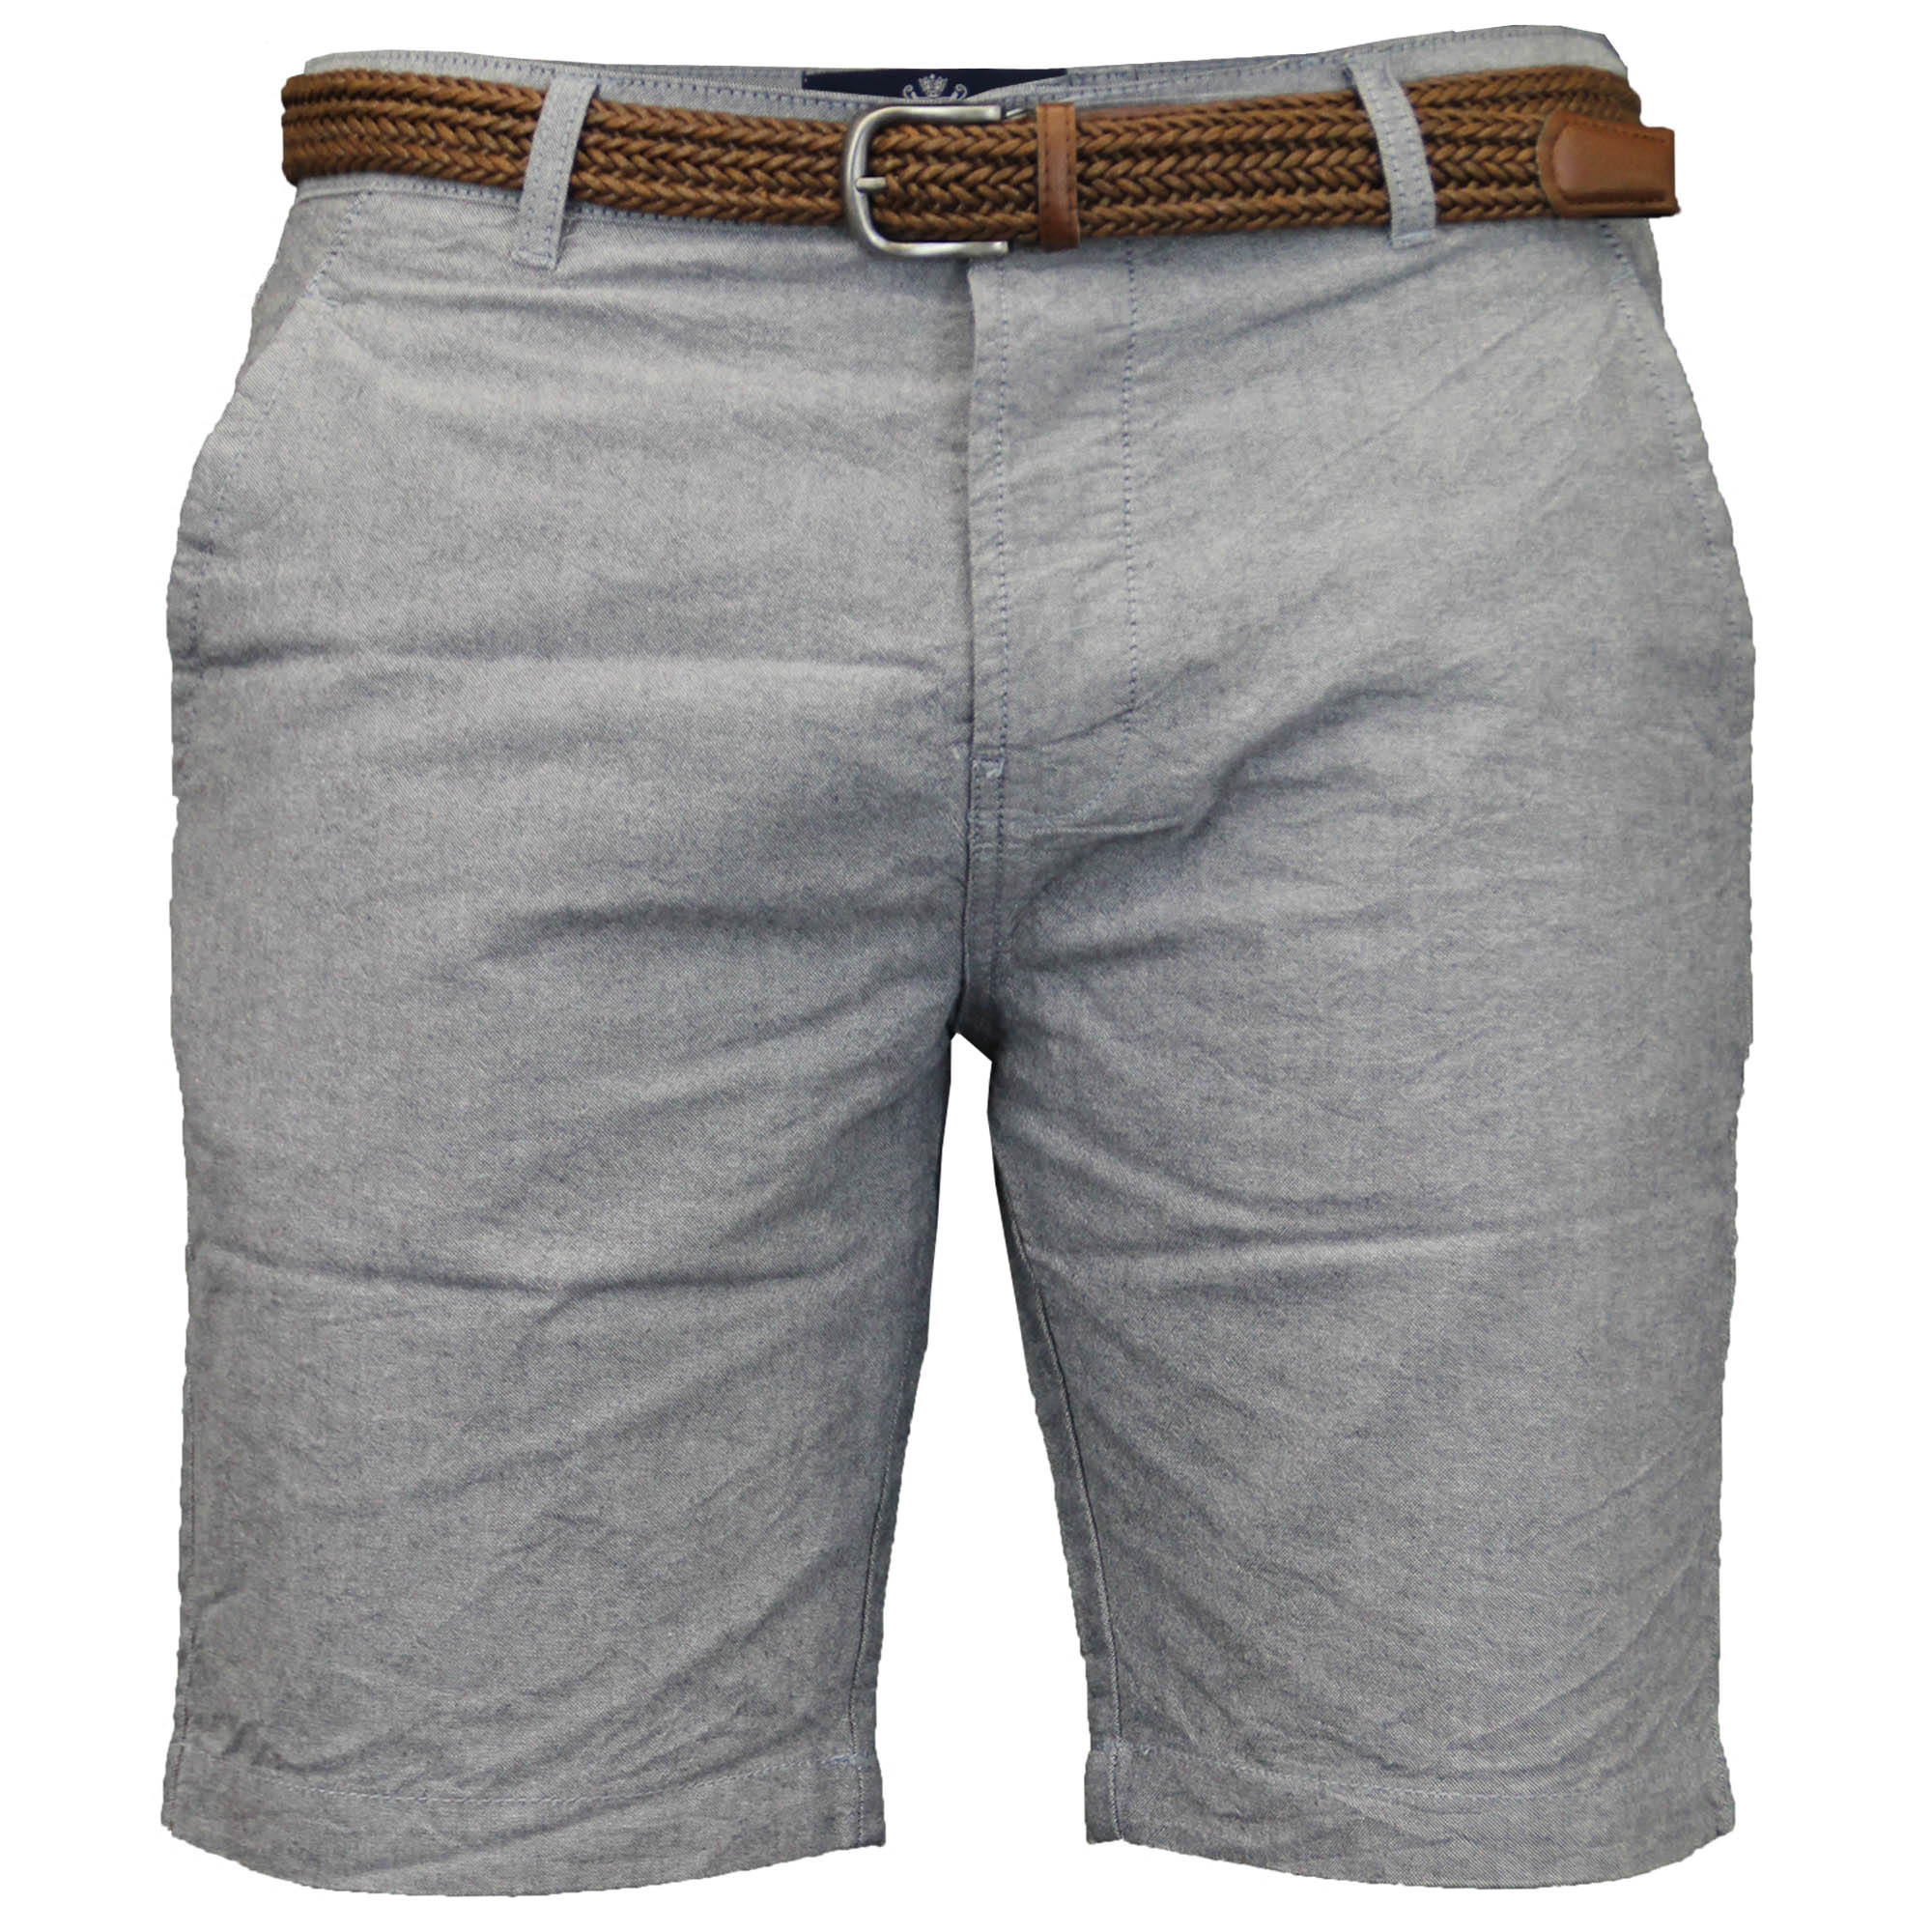 Mens Belted Chino Seven Series Cotton Threadbare Shorts